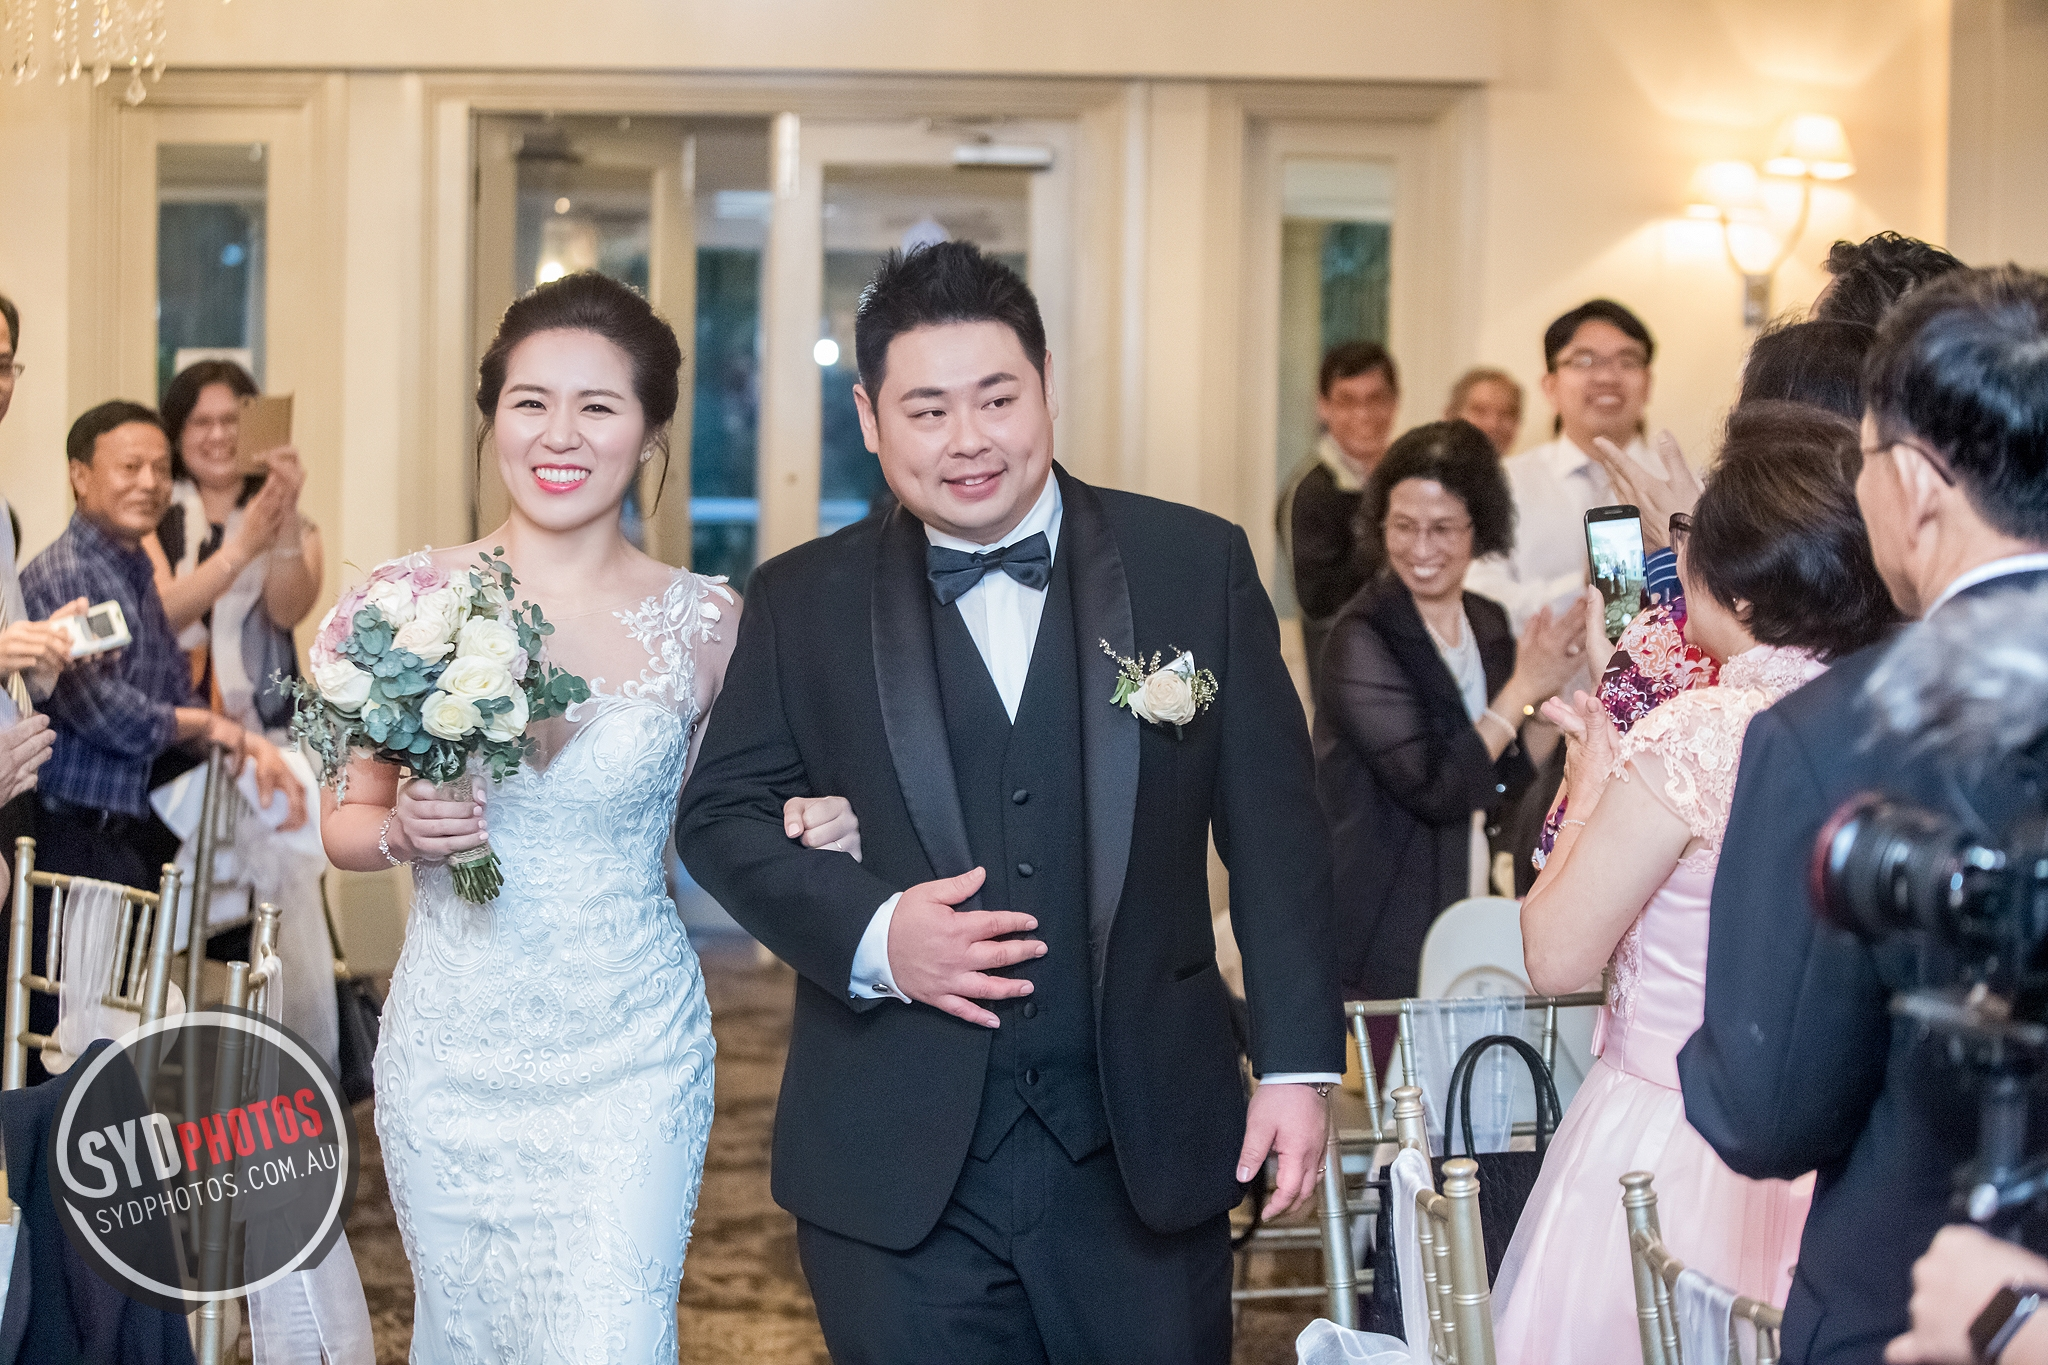 ID87727-20171013-1449.jpg, By Photographer Sydphotos.wedding, Created on 29 Jan 2018, SYDPHOTOS Photography all rights reserved.